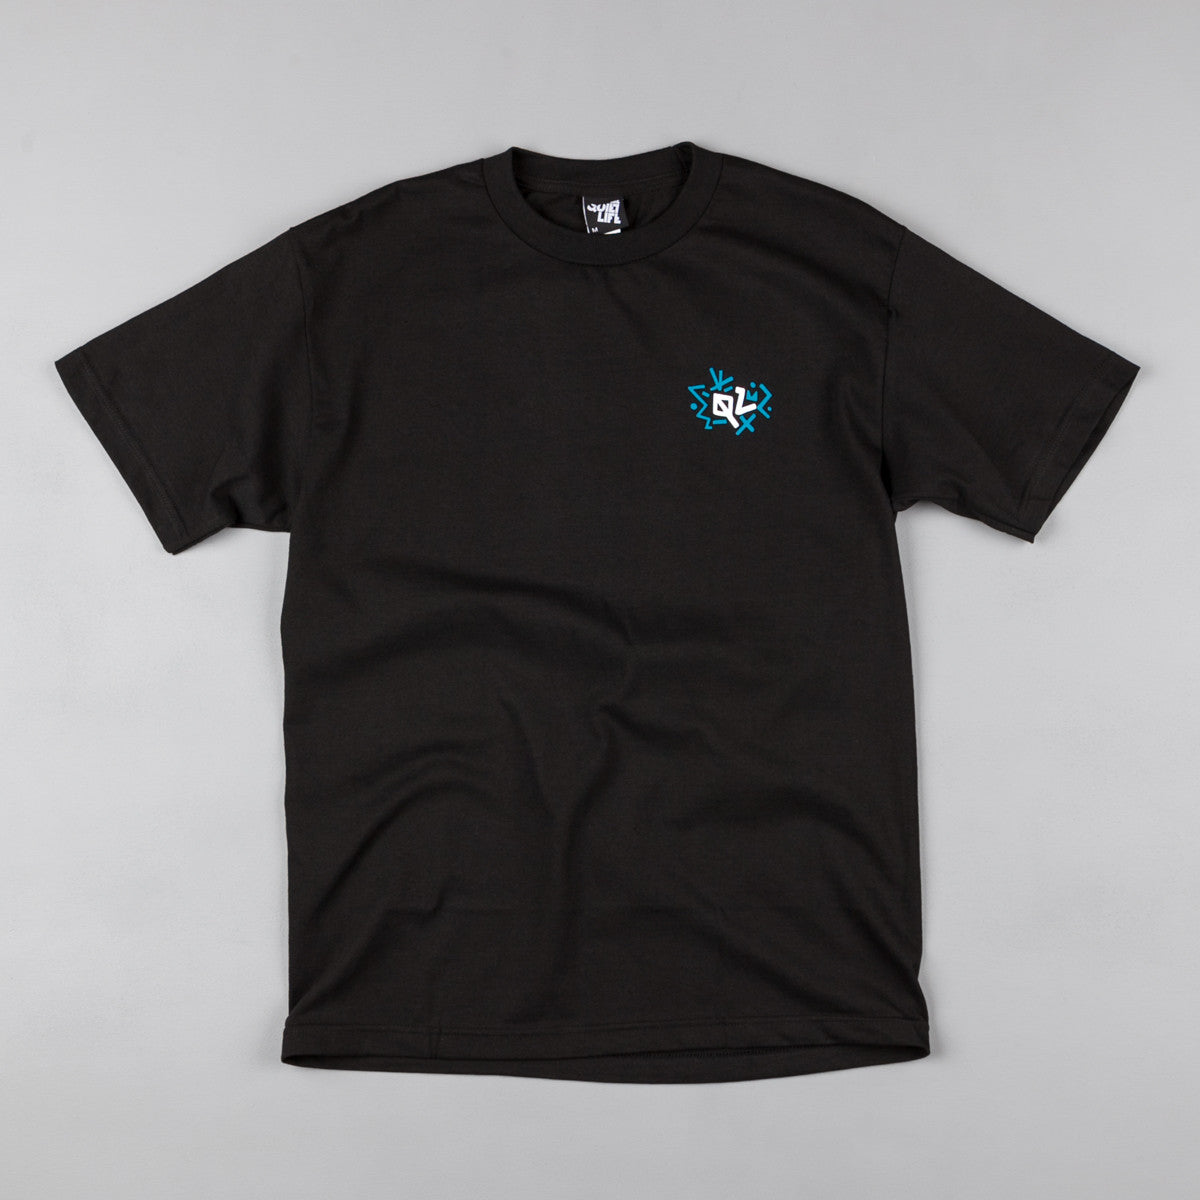 The Quiet Life Plus T-Shirt - Black